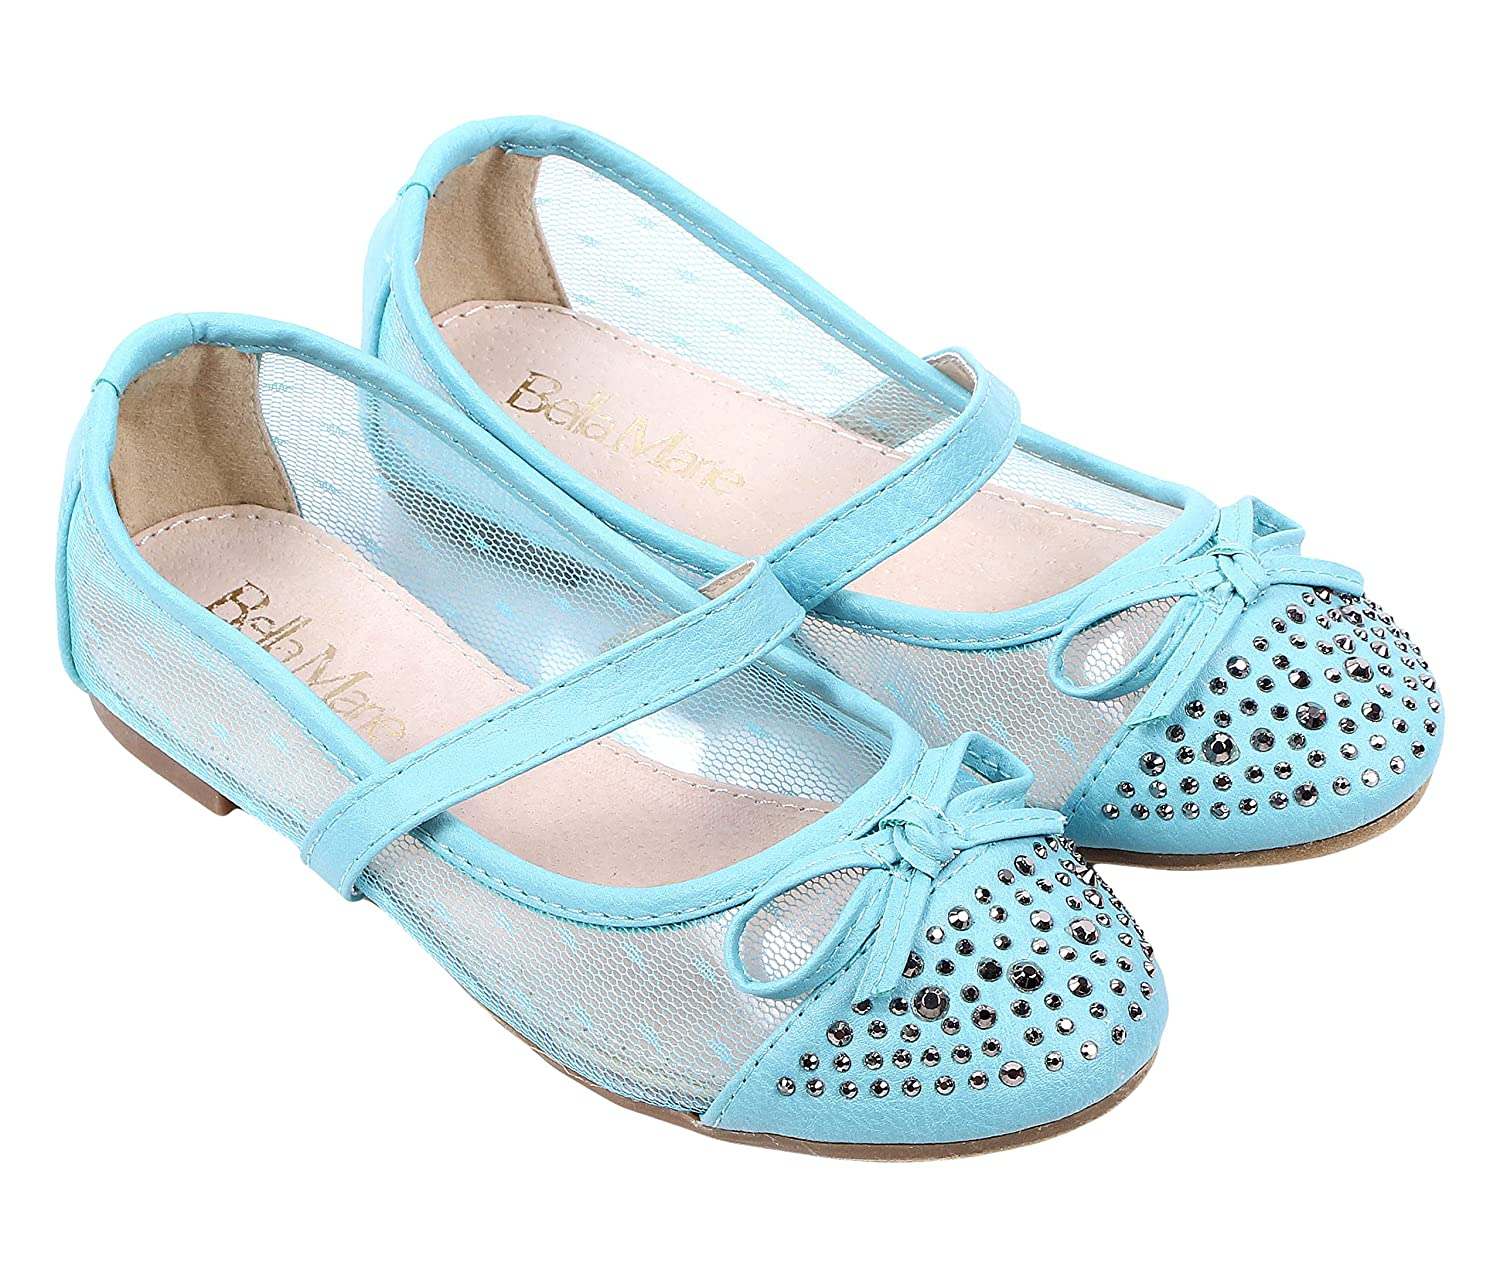 Other Fashion Cute Slip on Kids Dressy Bowknot Strap Girls Youth Casual Flats Shoes New Without Box